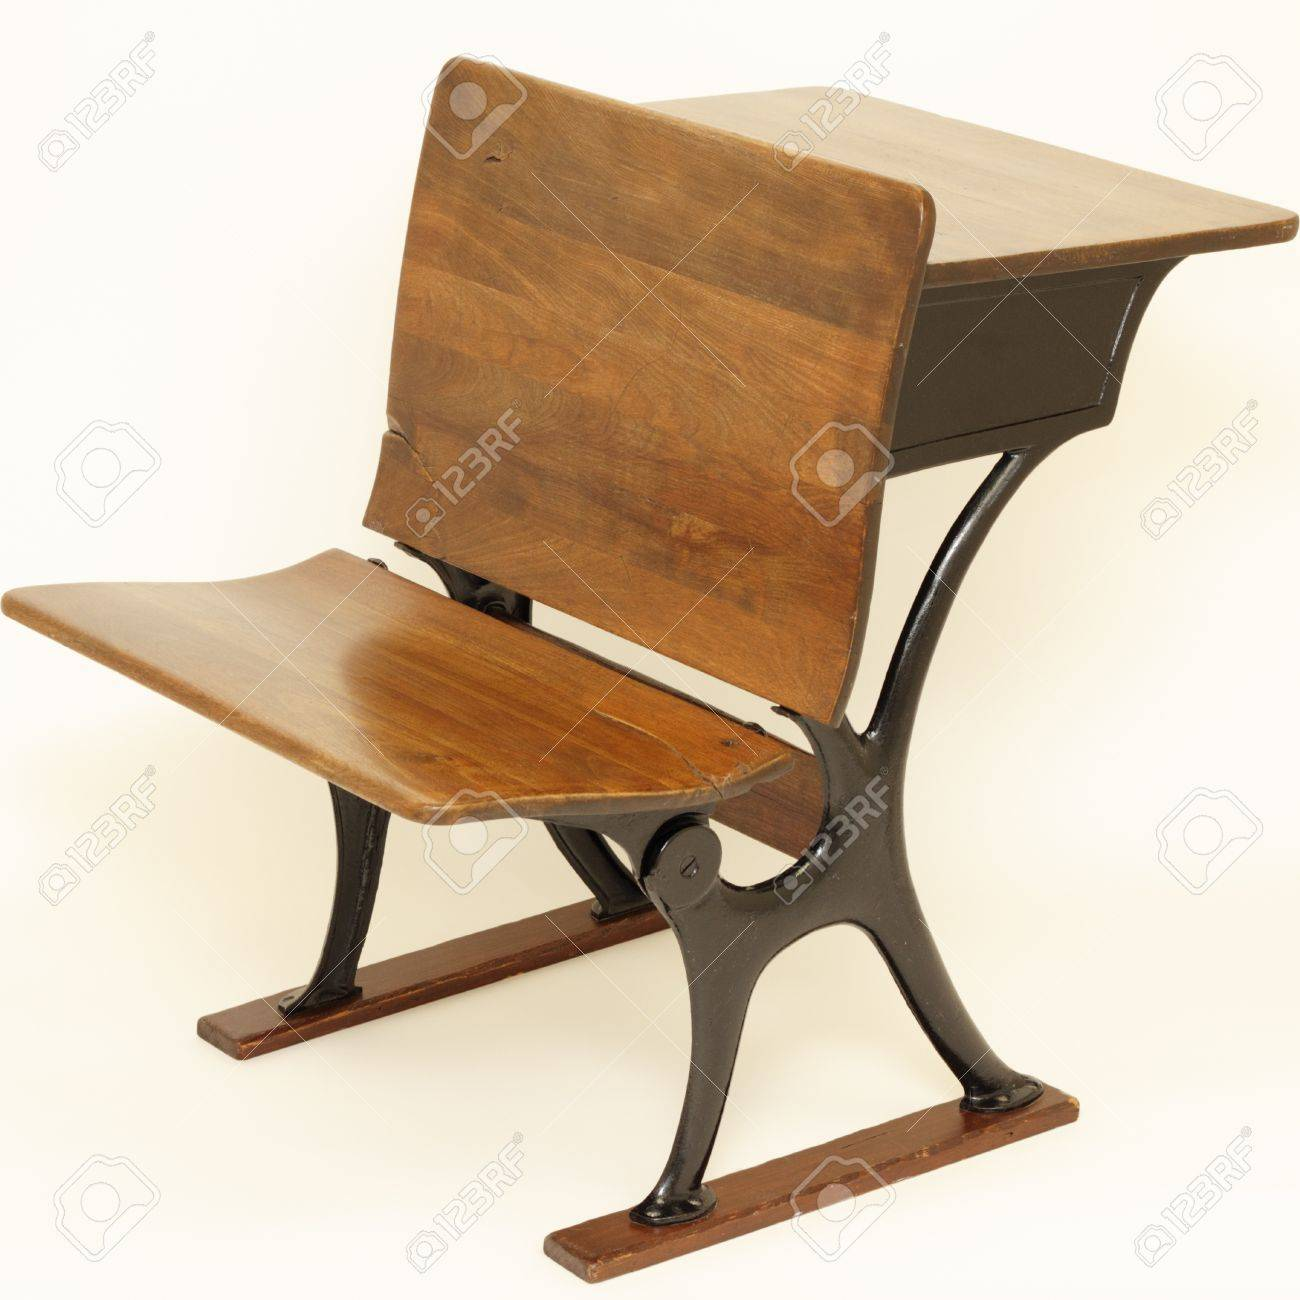 High Quality Old Wood And Metal Combination School Chair In Front And School Desk In Back.  Stock